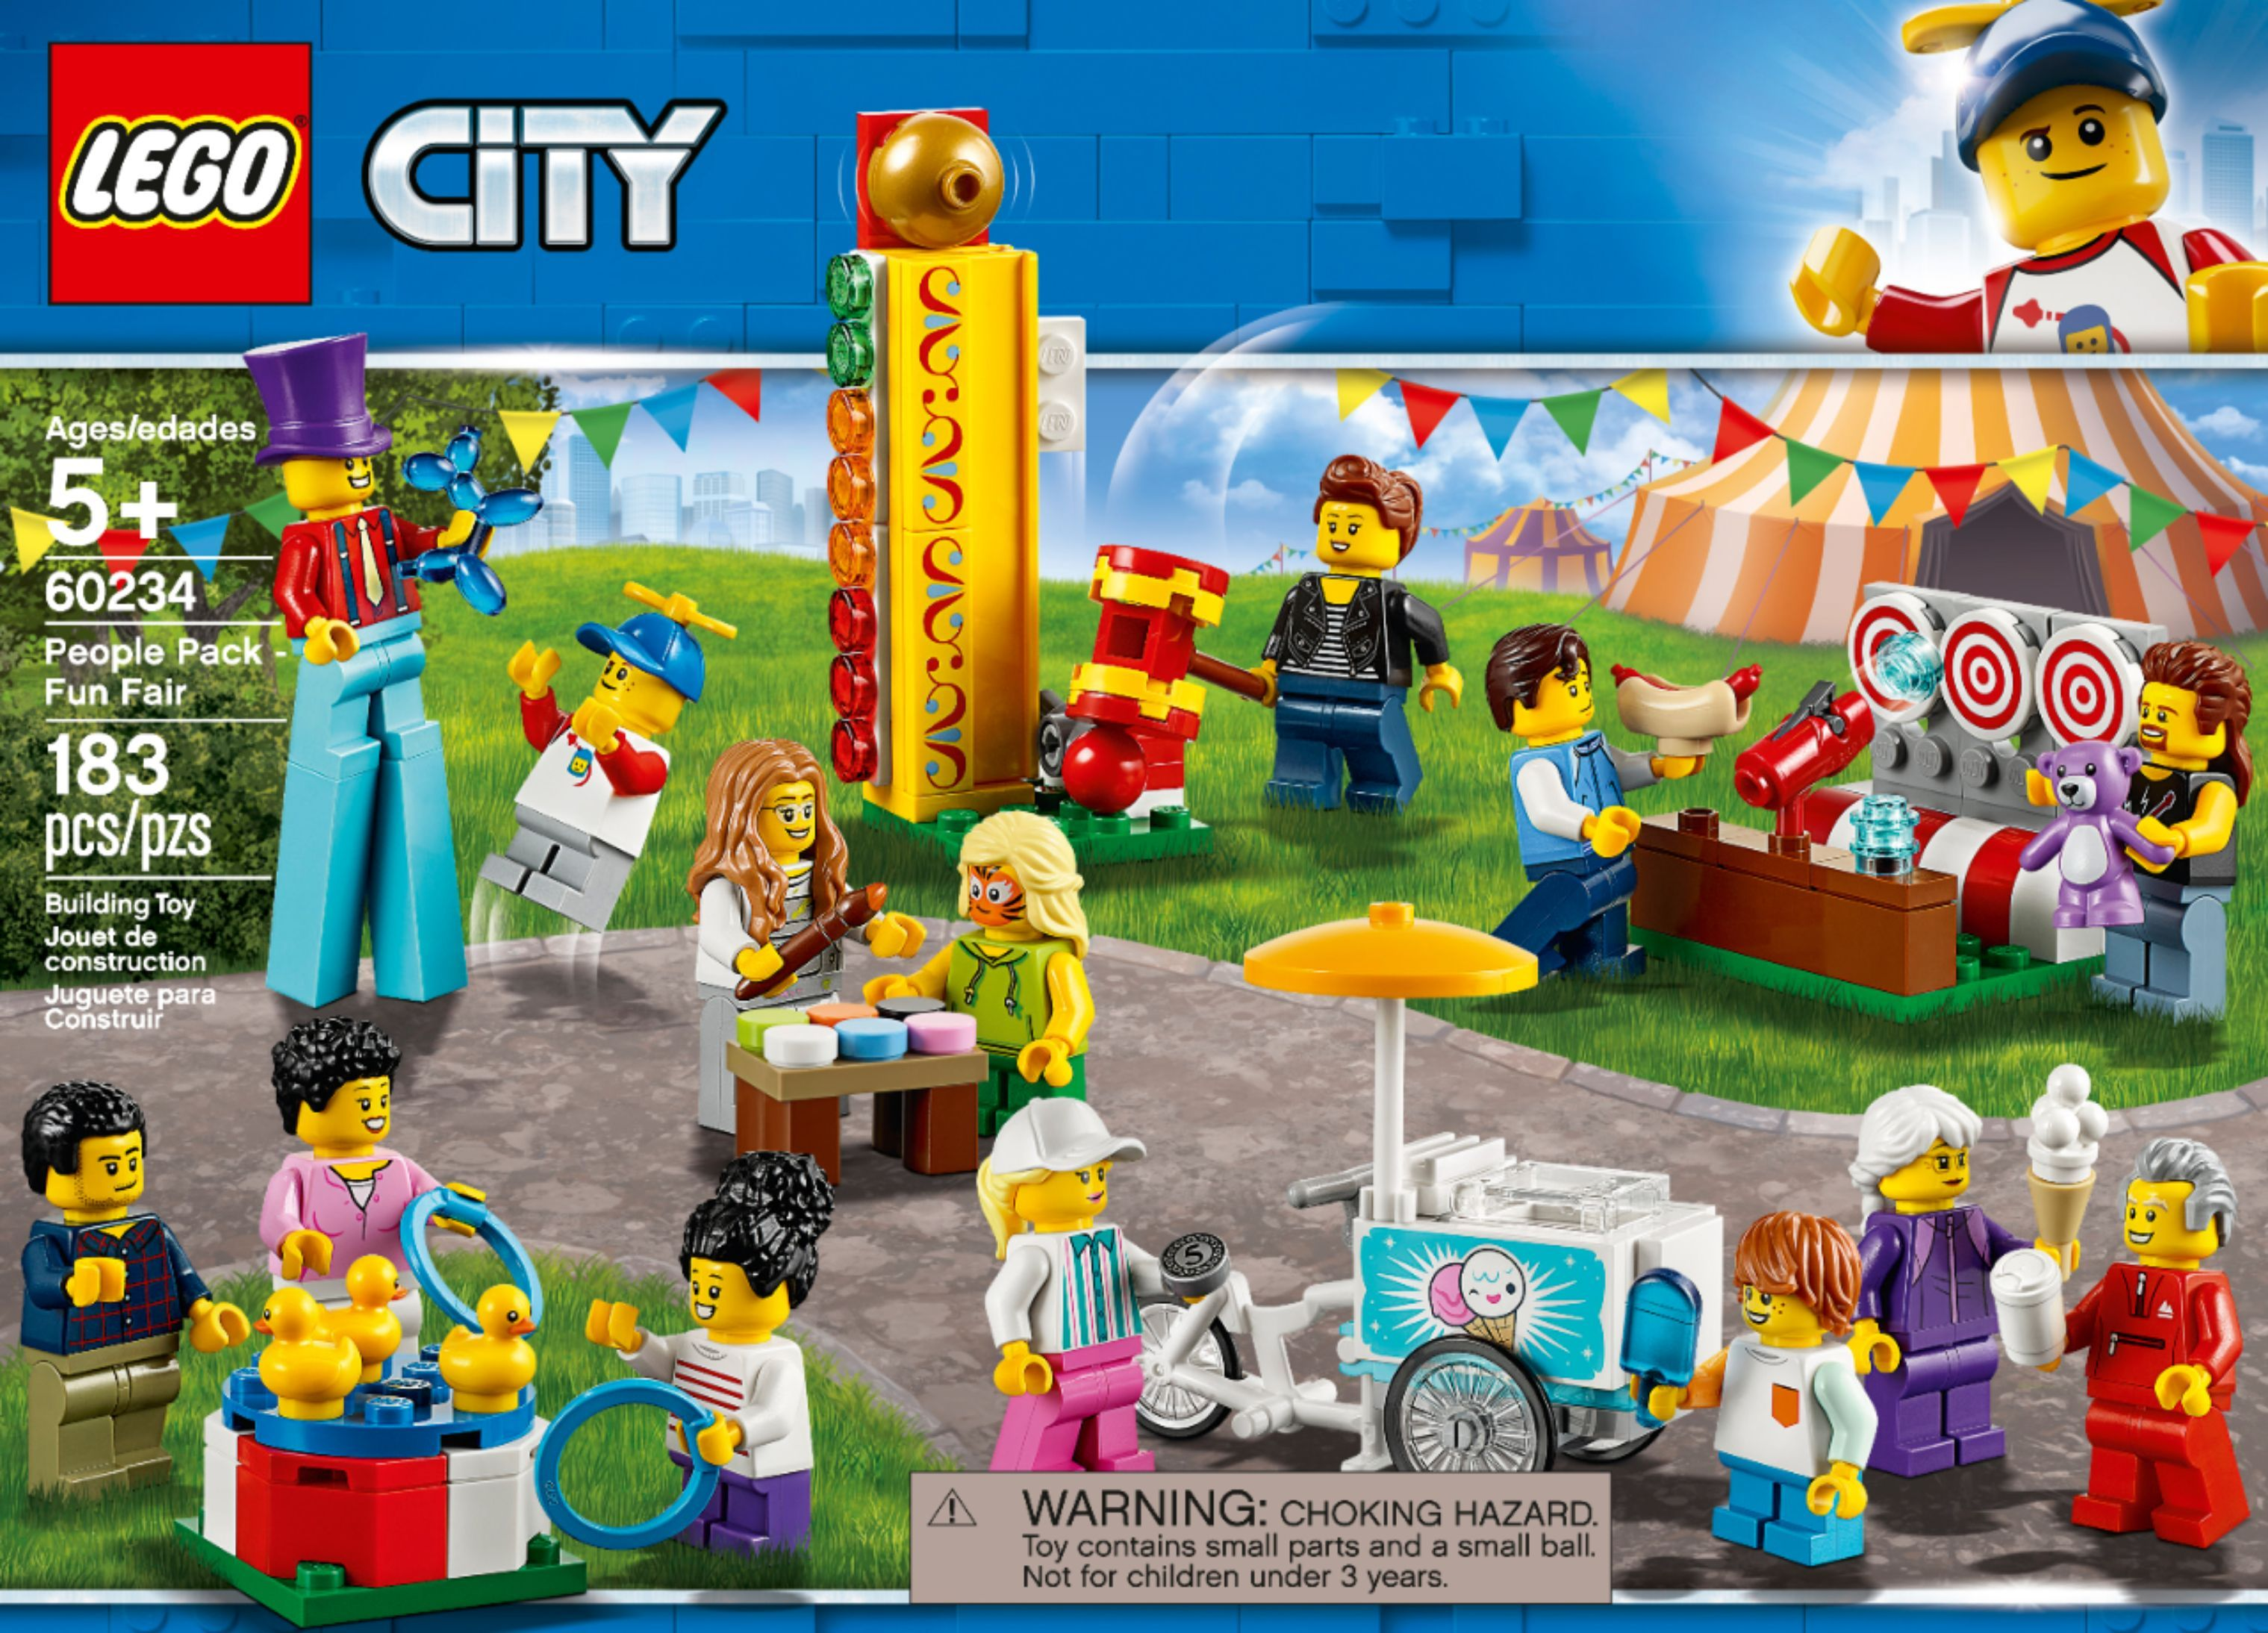 60234 Lego City Fun Fair Minifigures People Pack